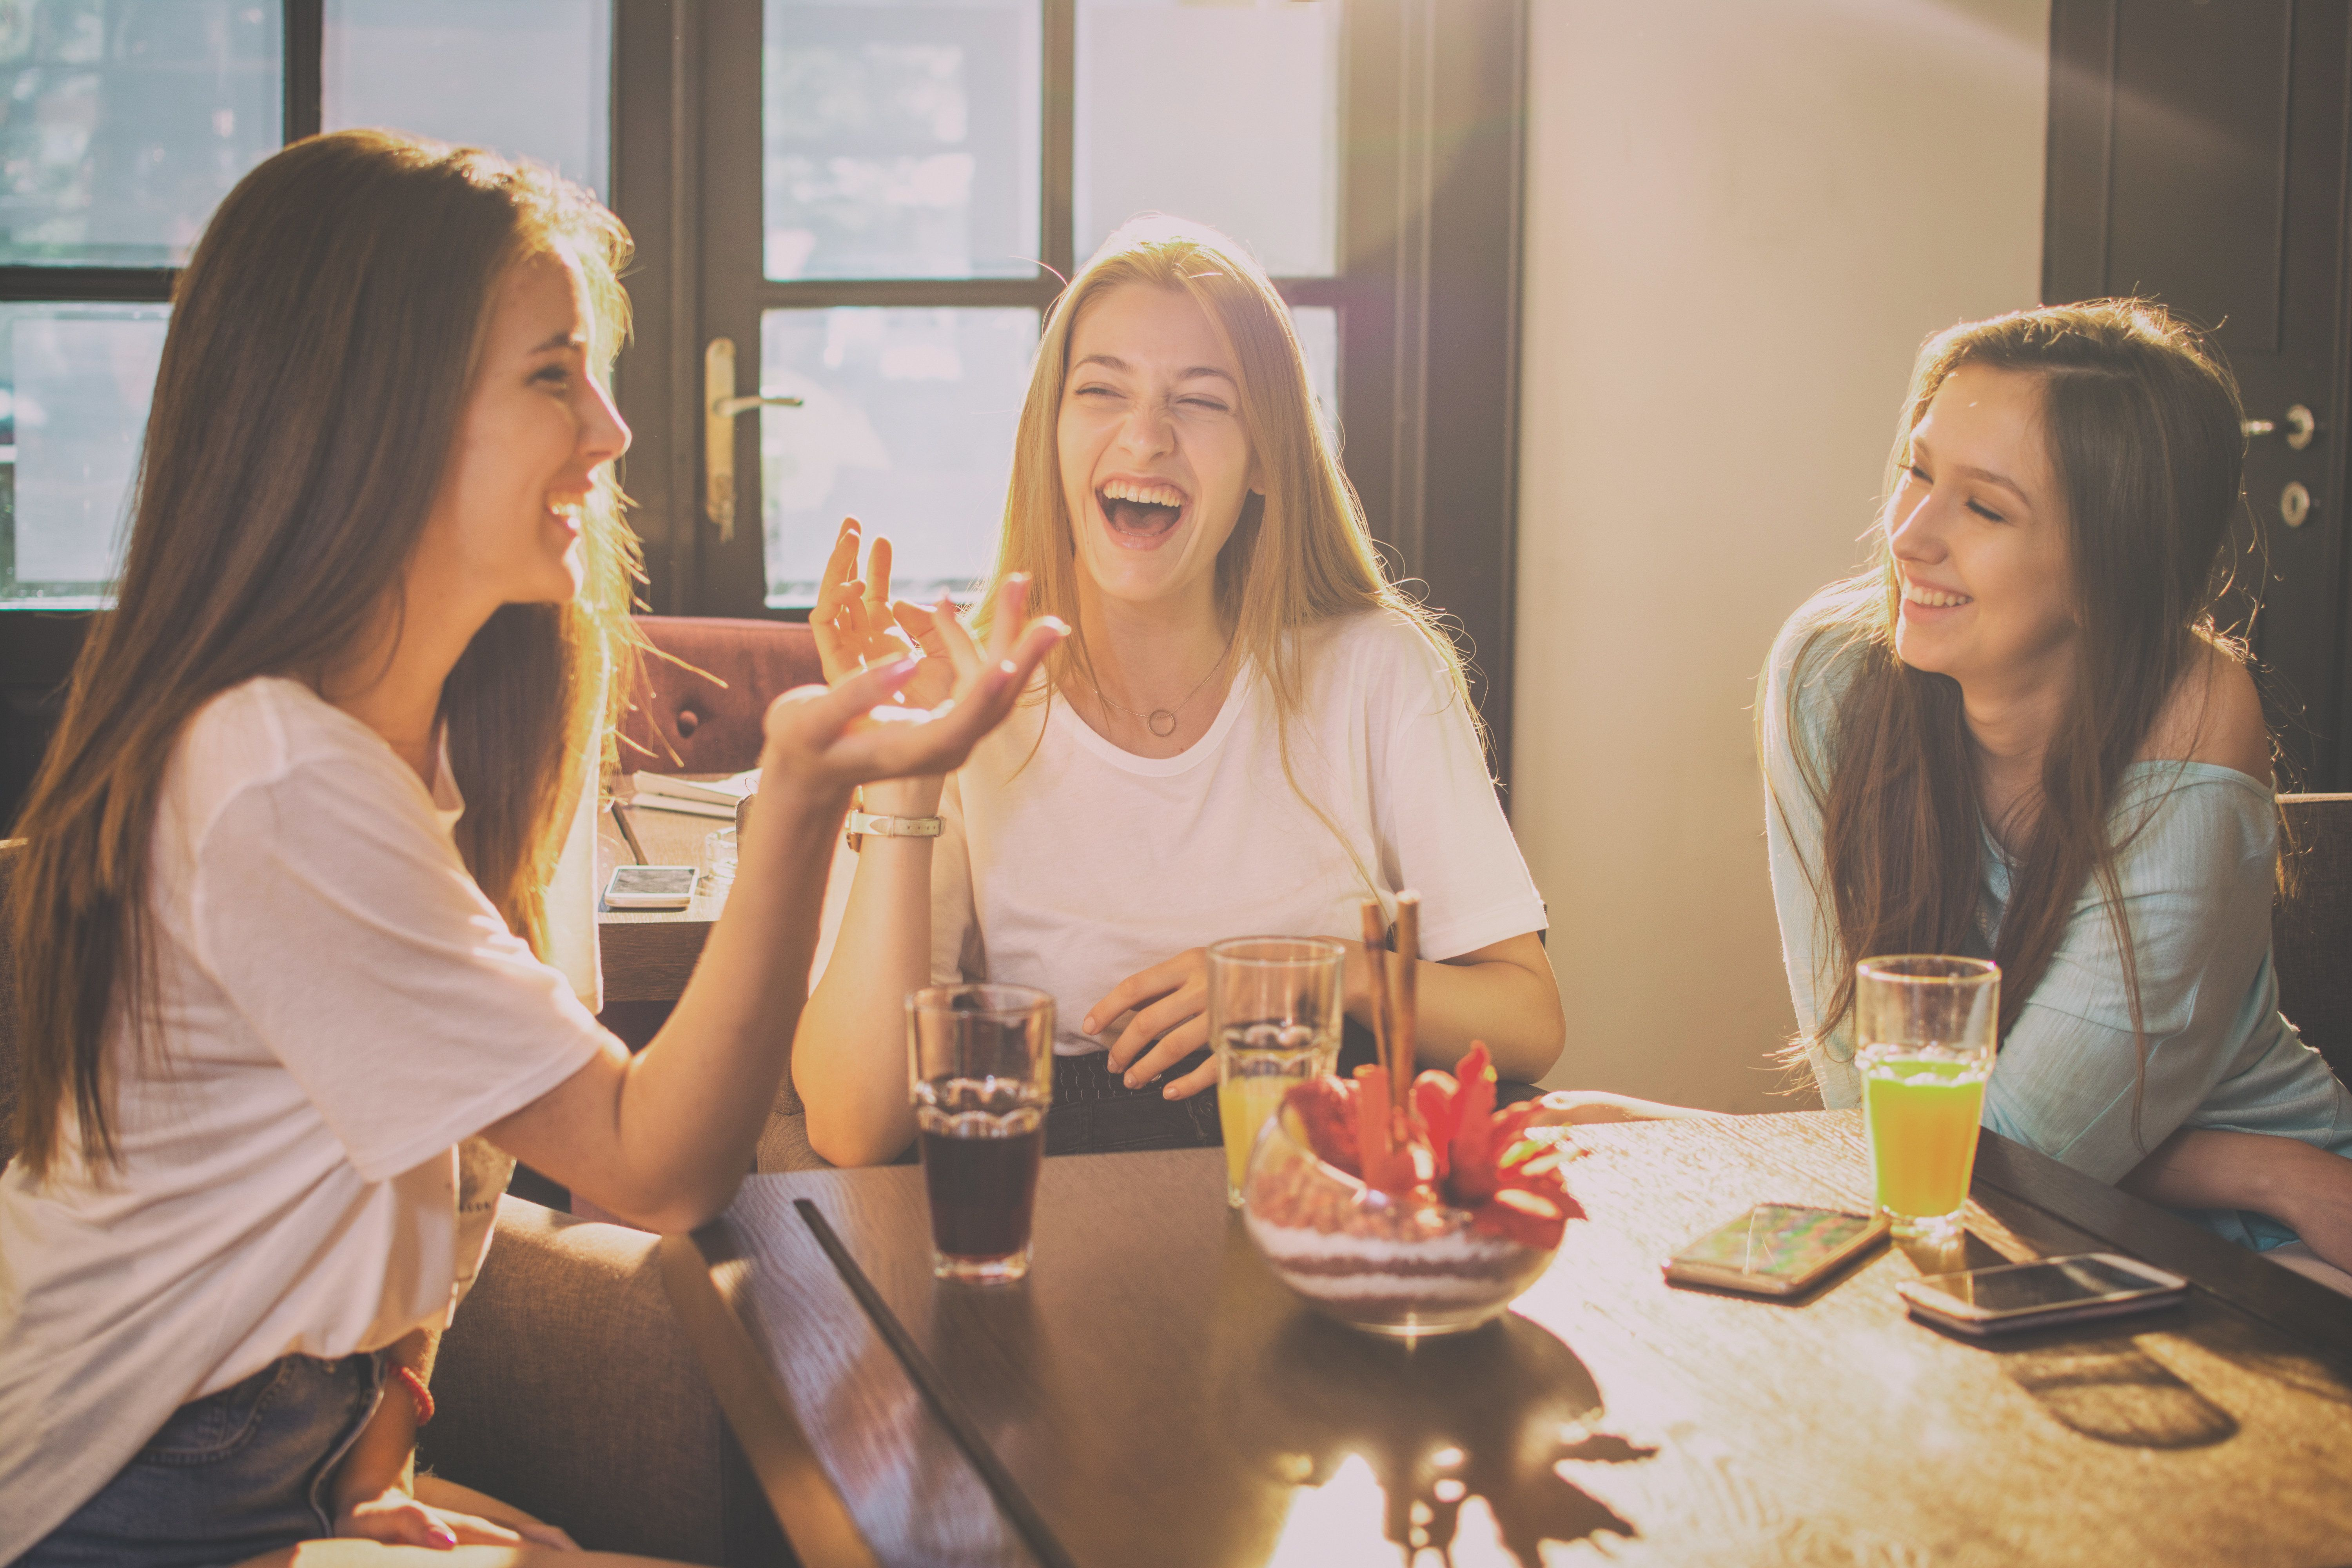 Food Allergies – Here's How To Keep Yourself And Your Friends